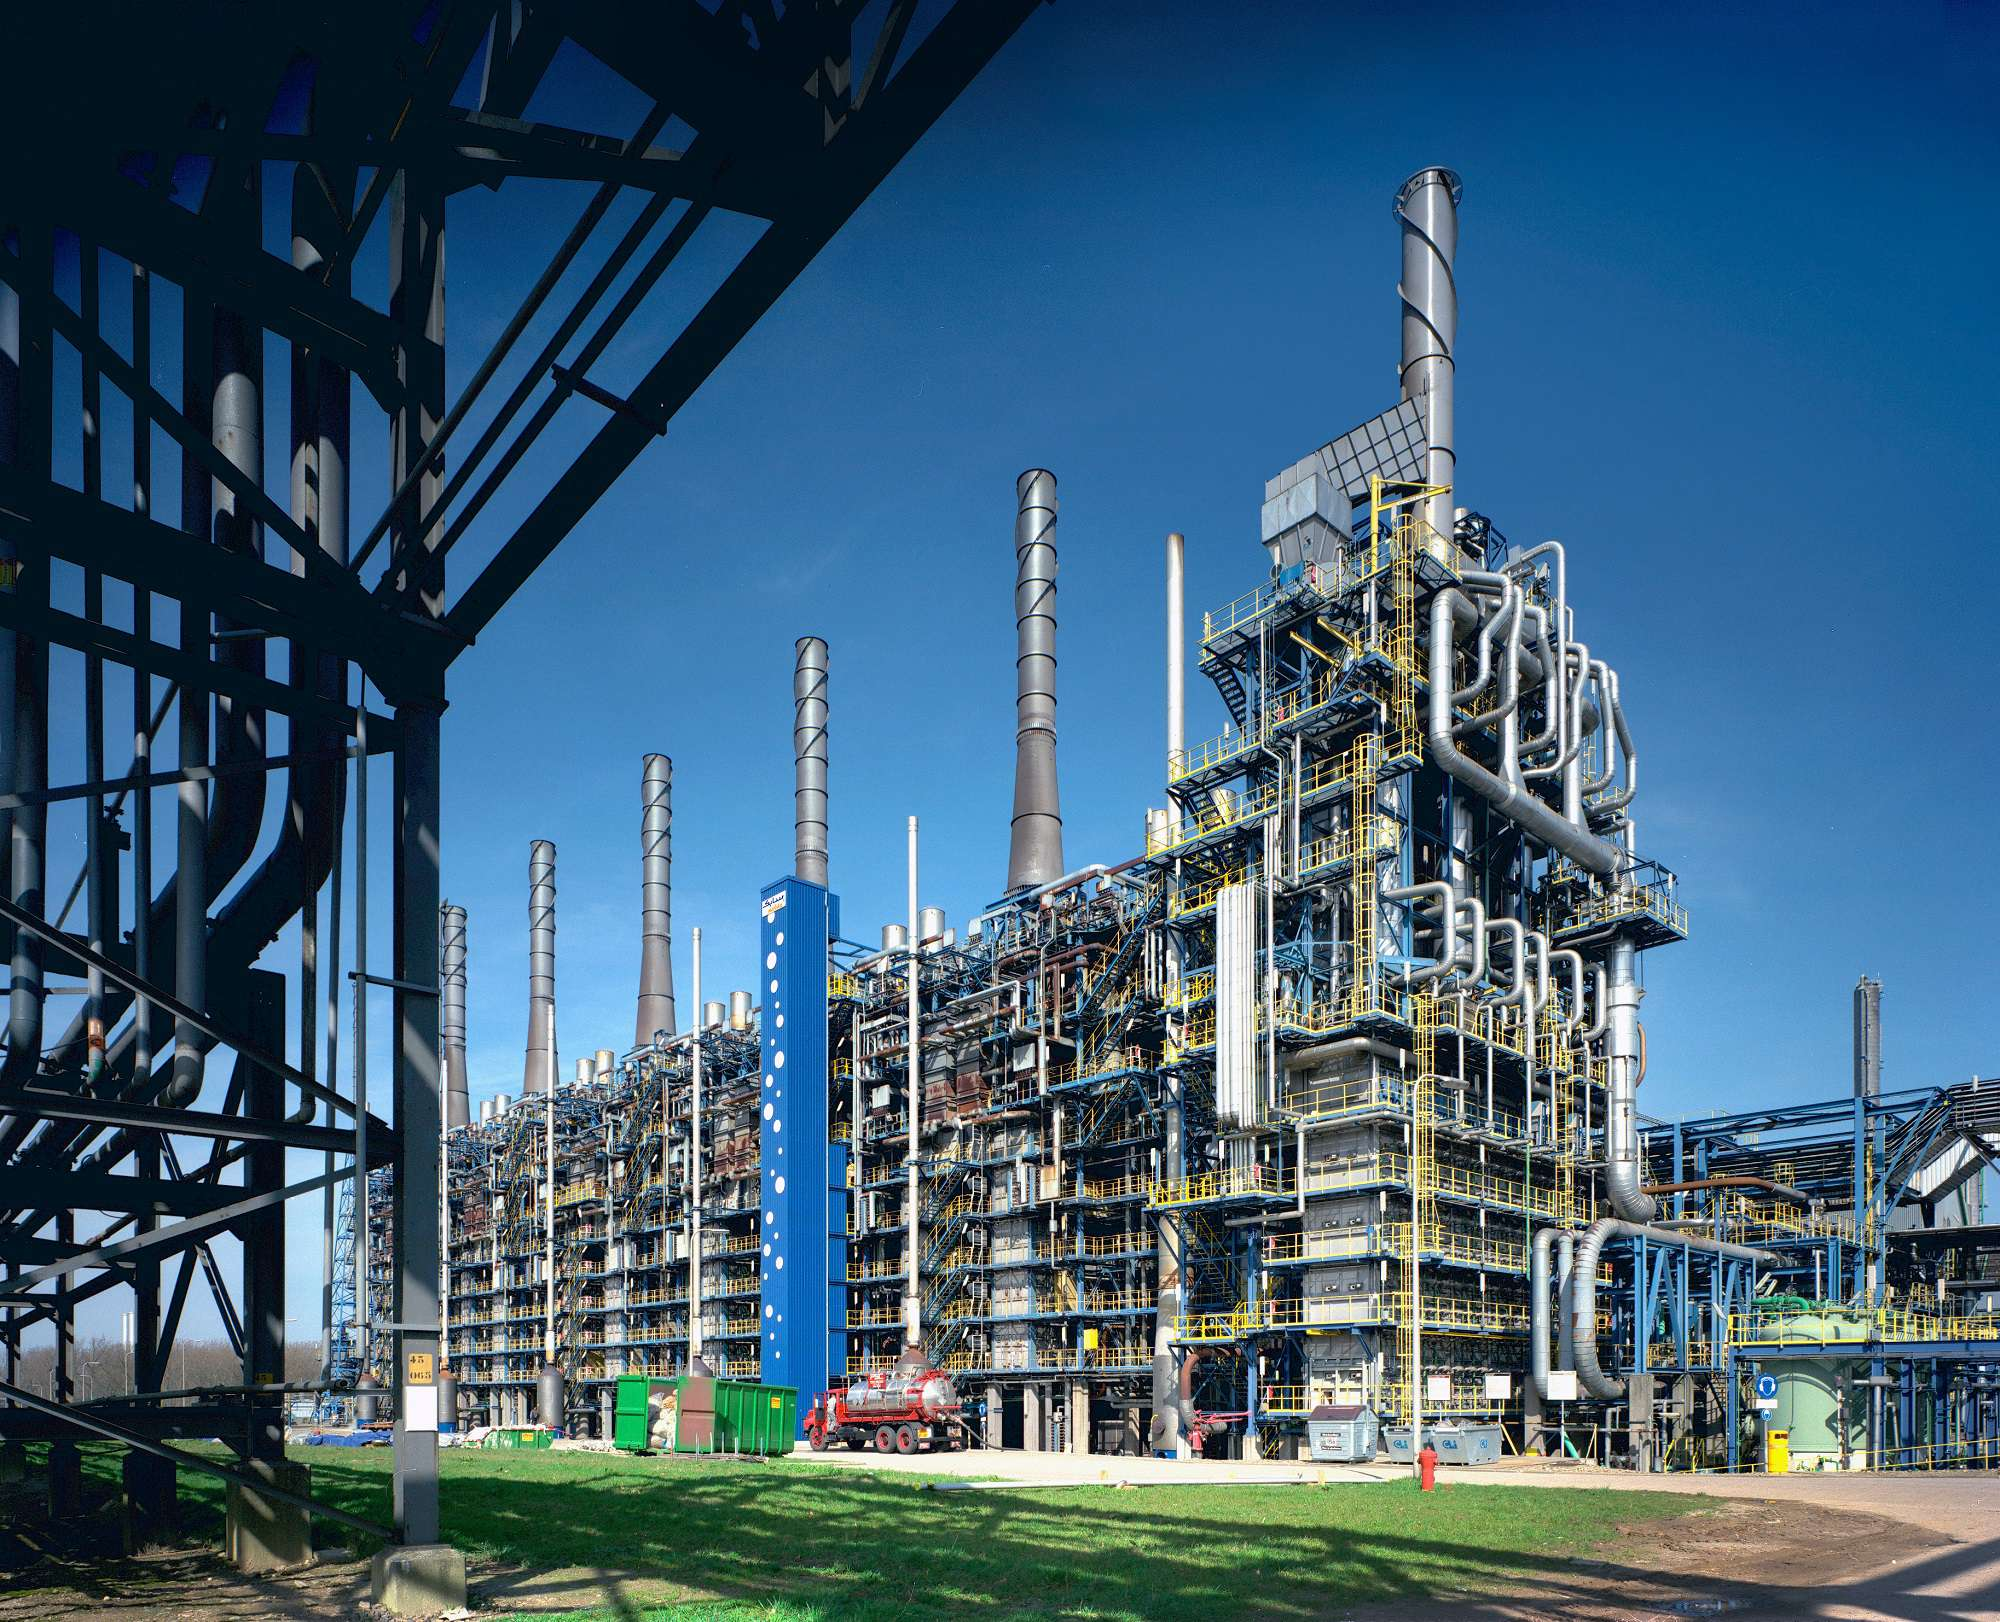 Naphtha cracker links petrochemicals with the agricultural and waste sectors